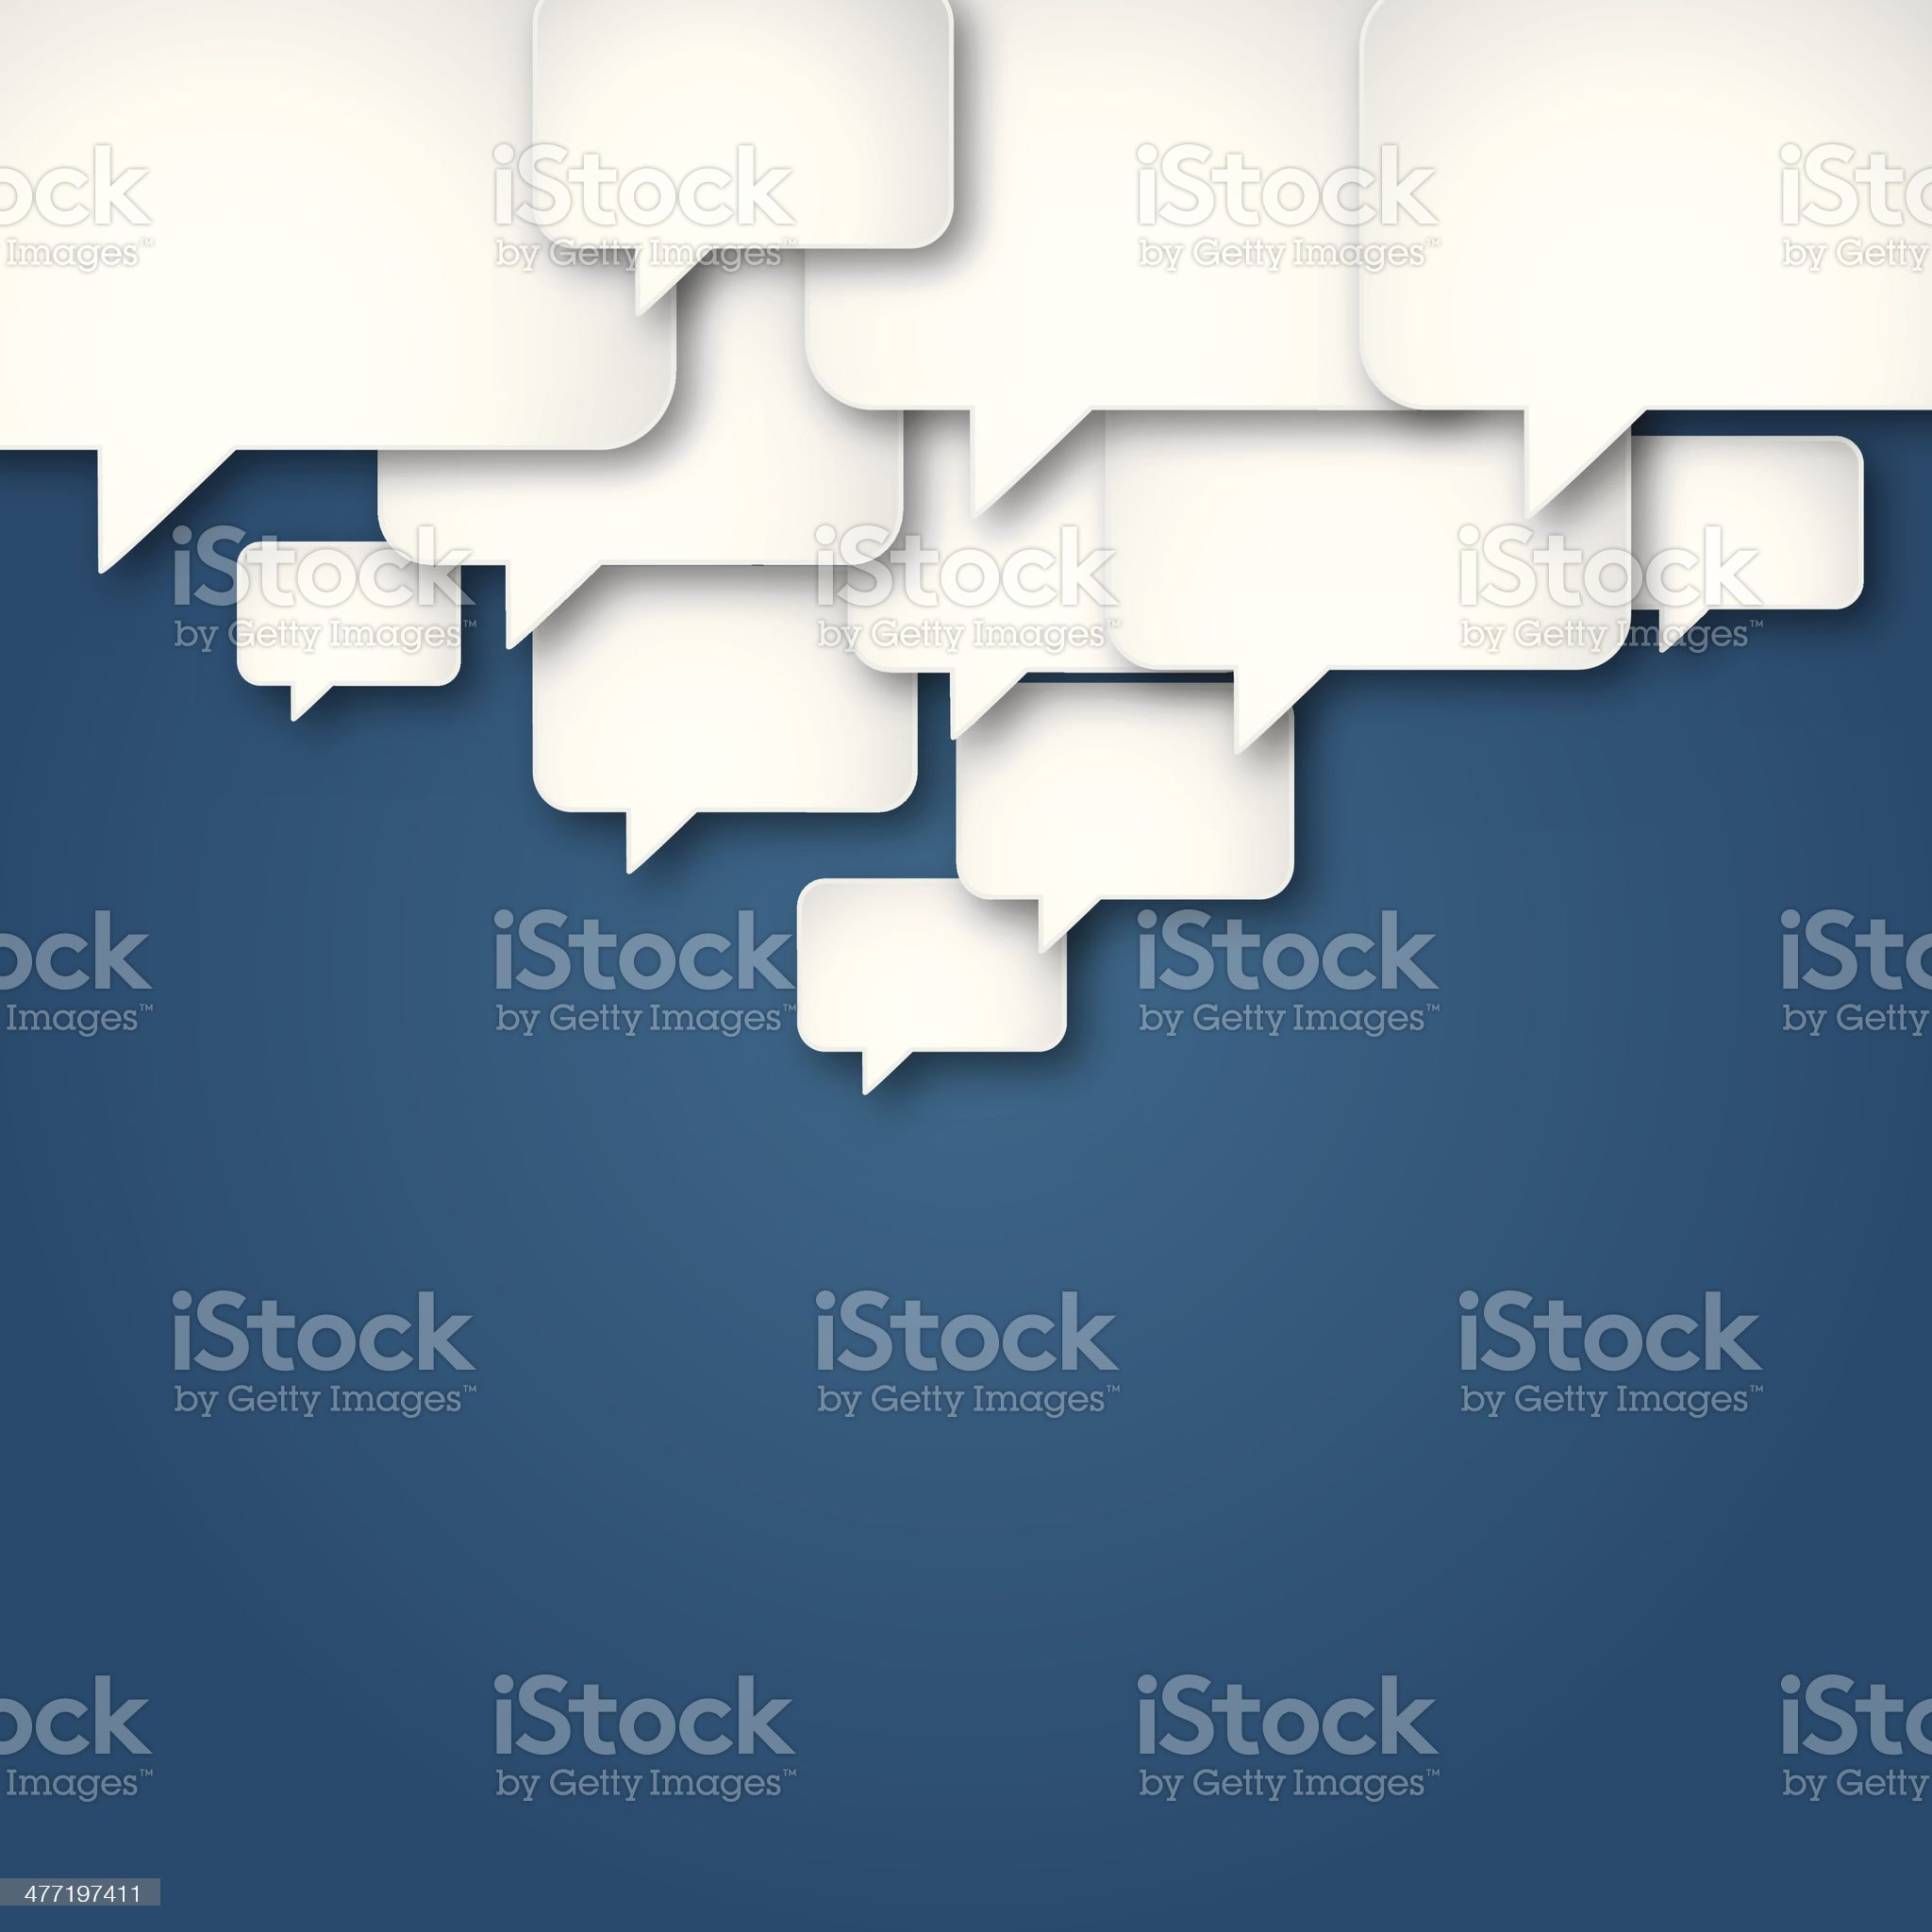 Blue Background with Many Differently Sized Speech Bubbles royalty-free stock vector art